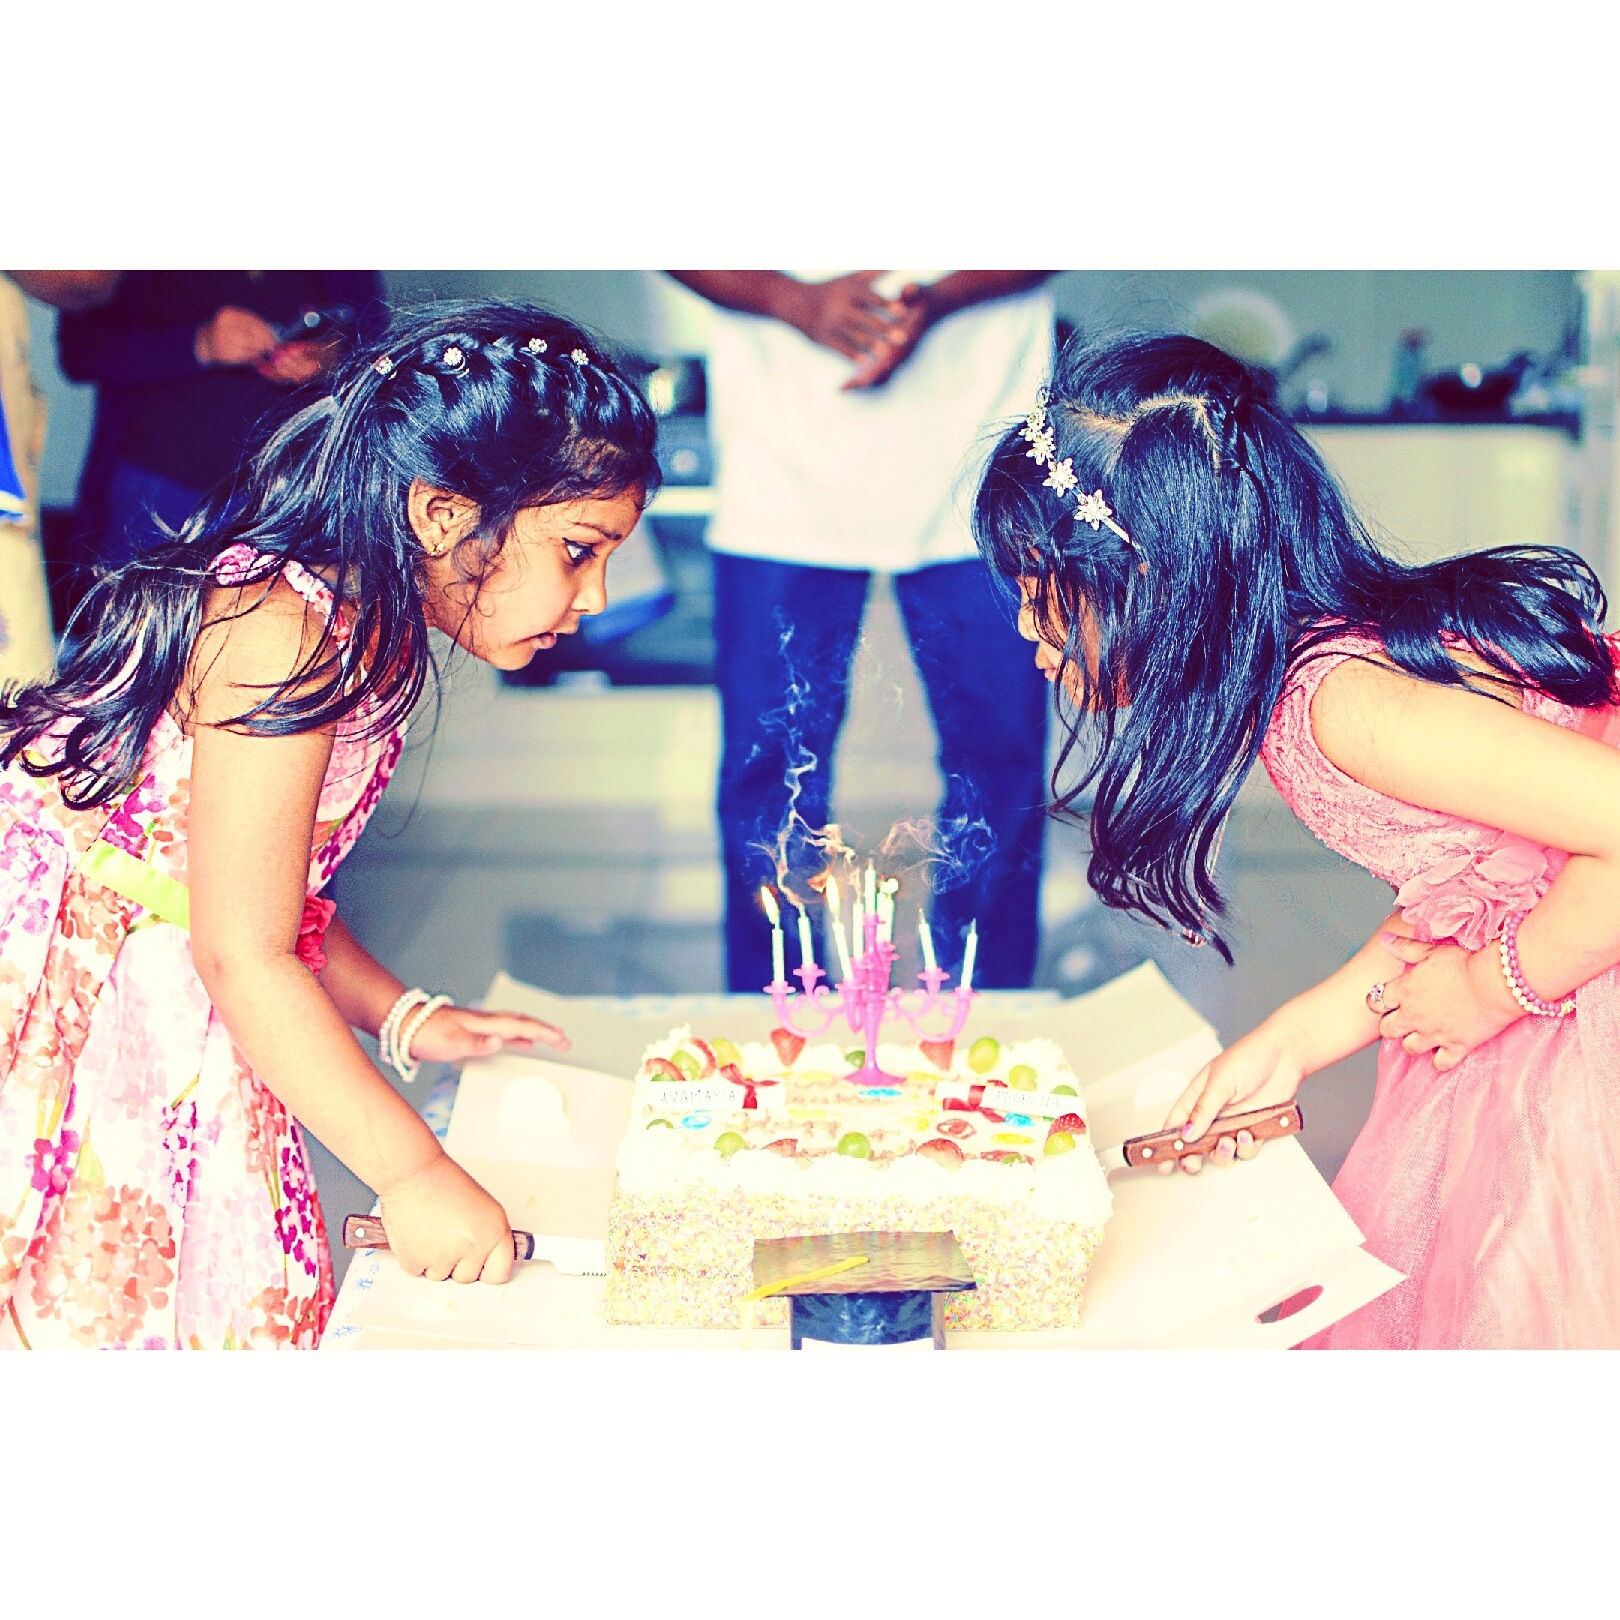 When two sisters celebrate  by Richu Mathew Varghese